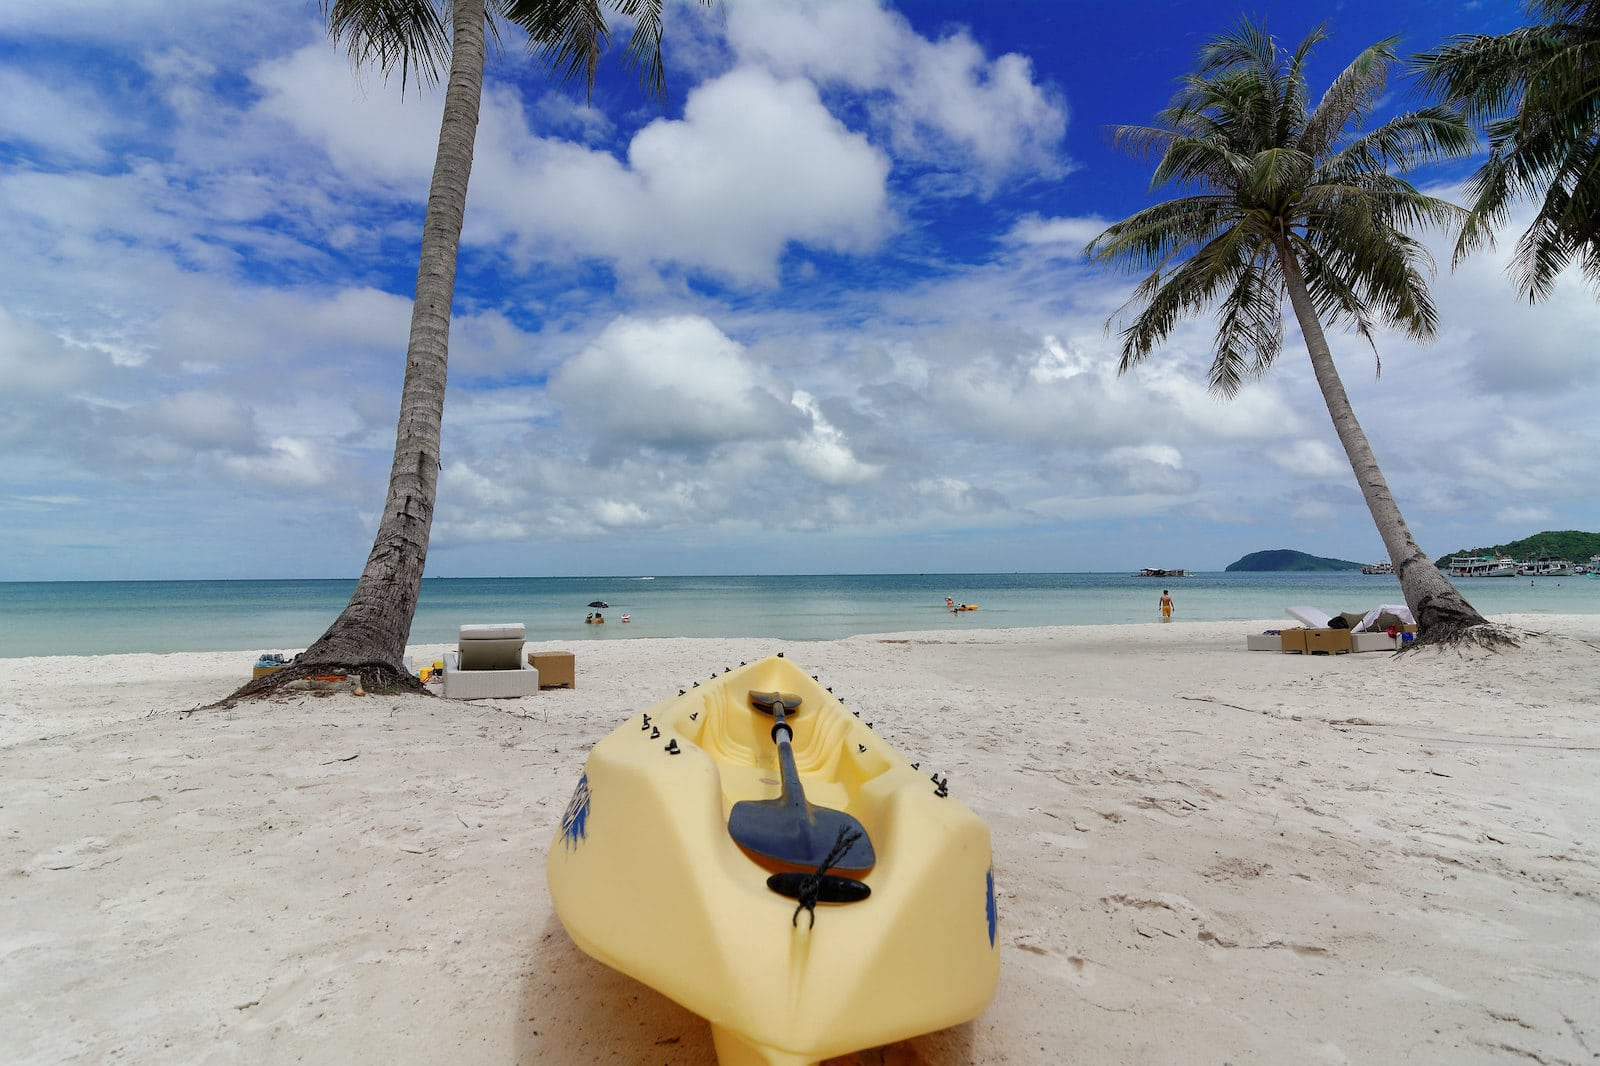 Image of a kayak at Phu Quoc Beach in Vietnam